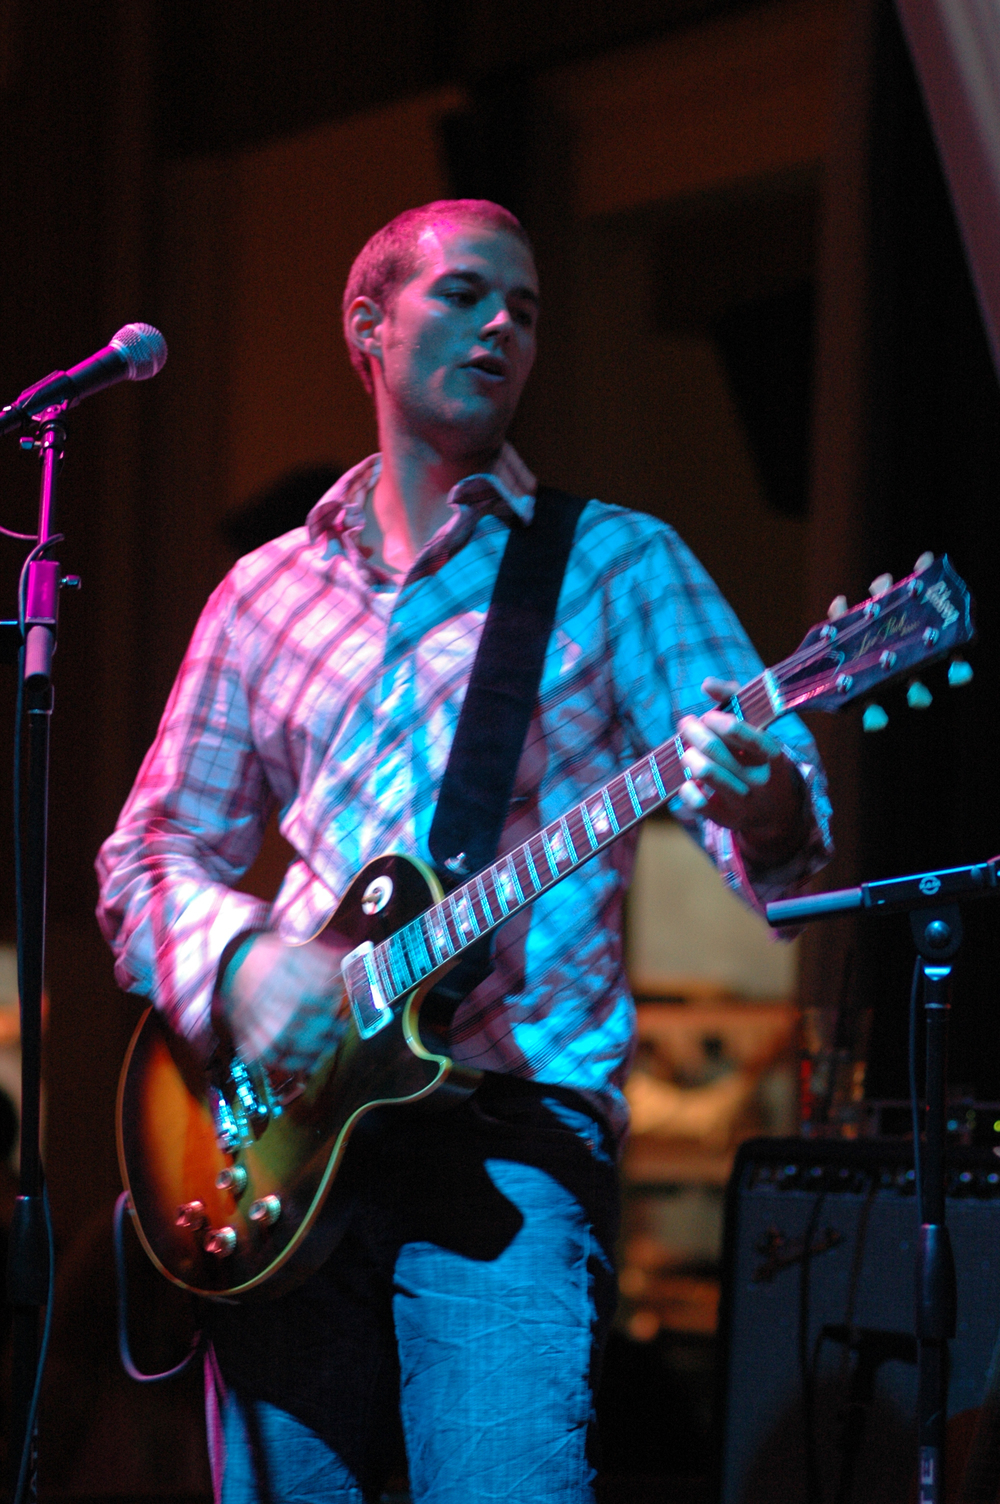 phil-higgins-guitar-05.JPG